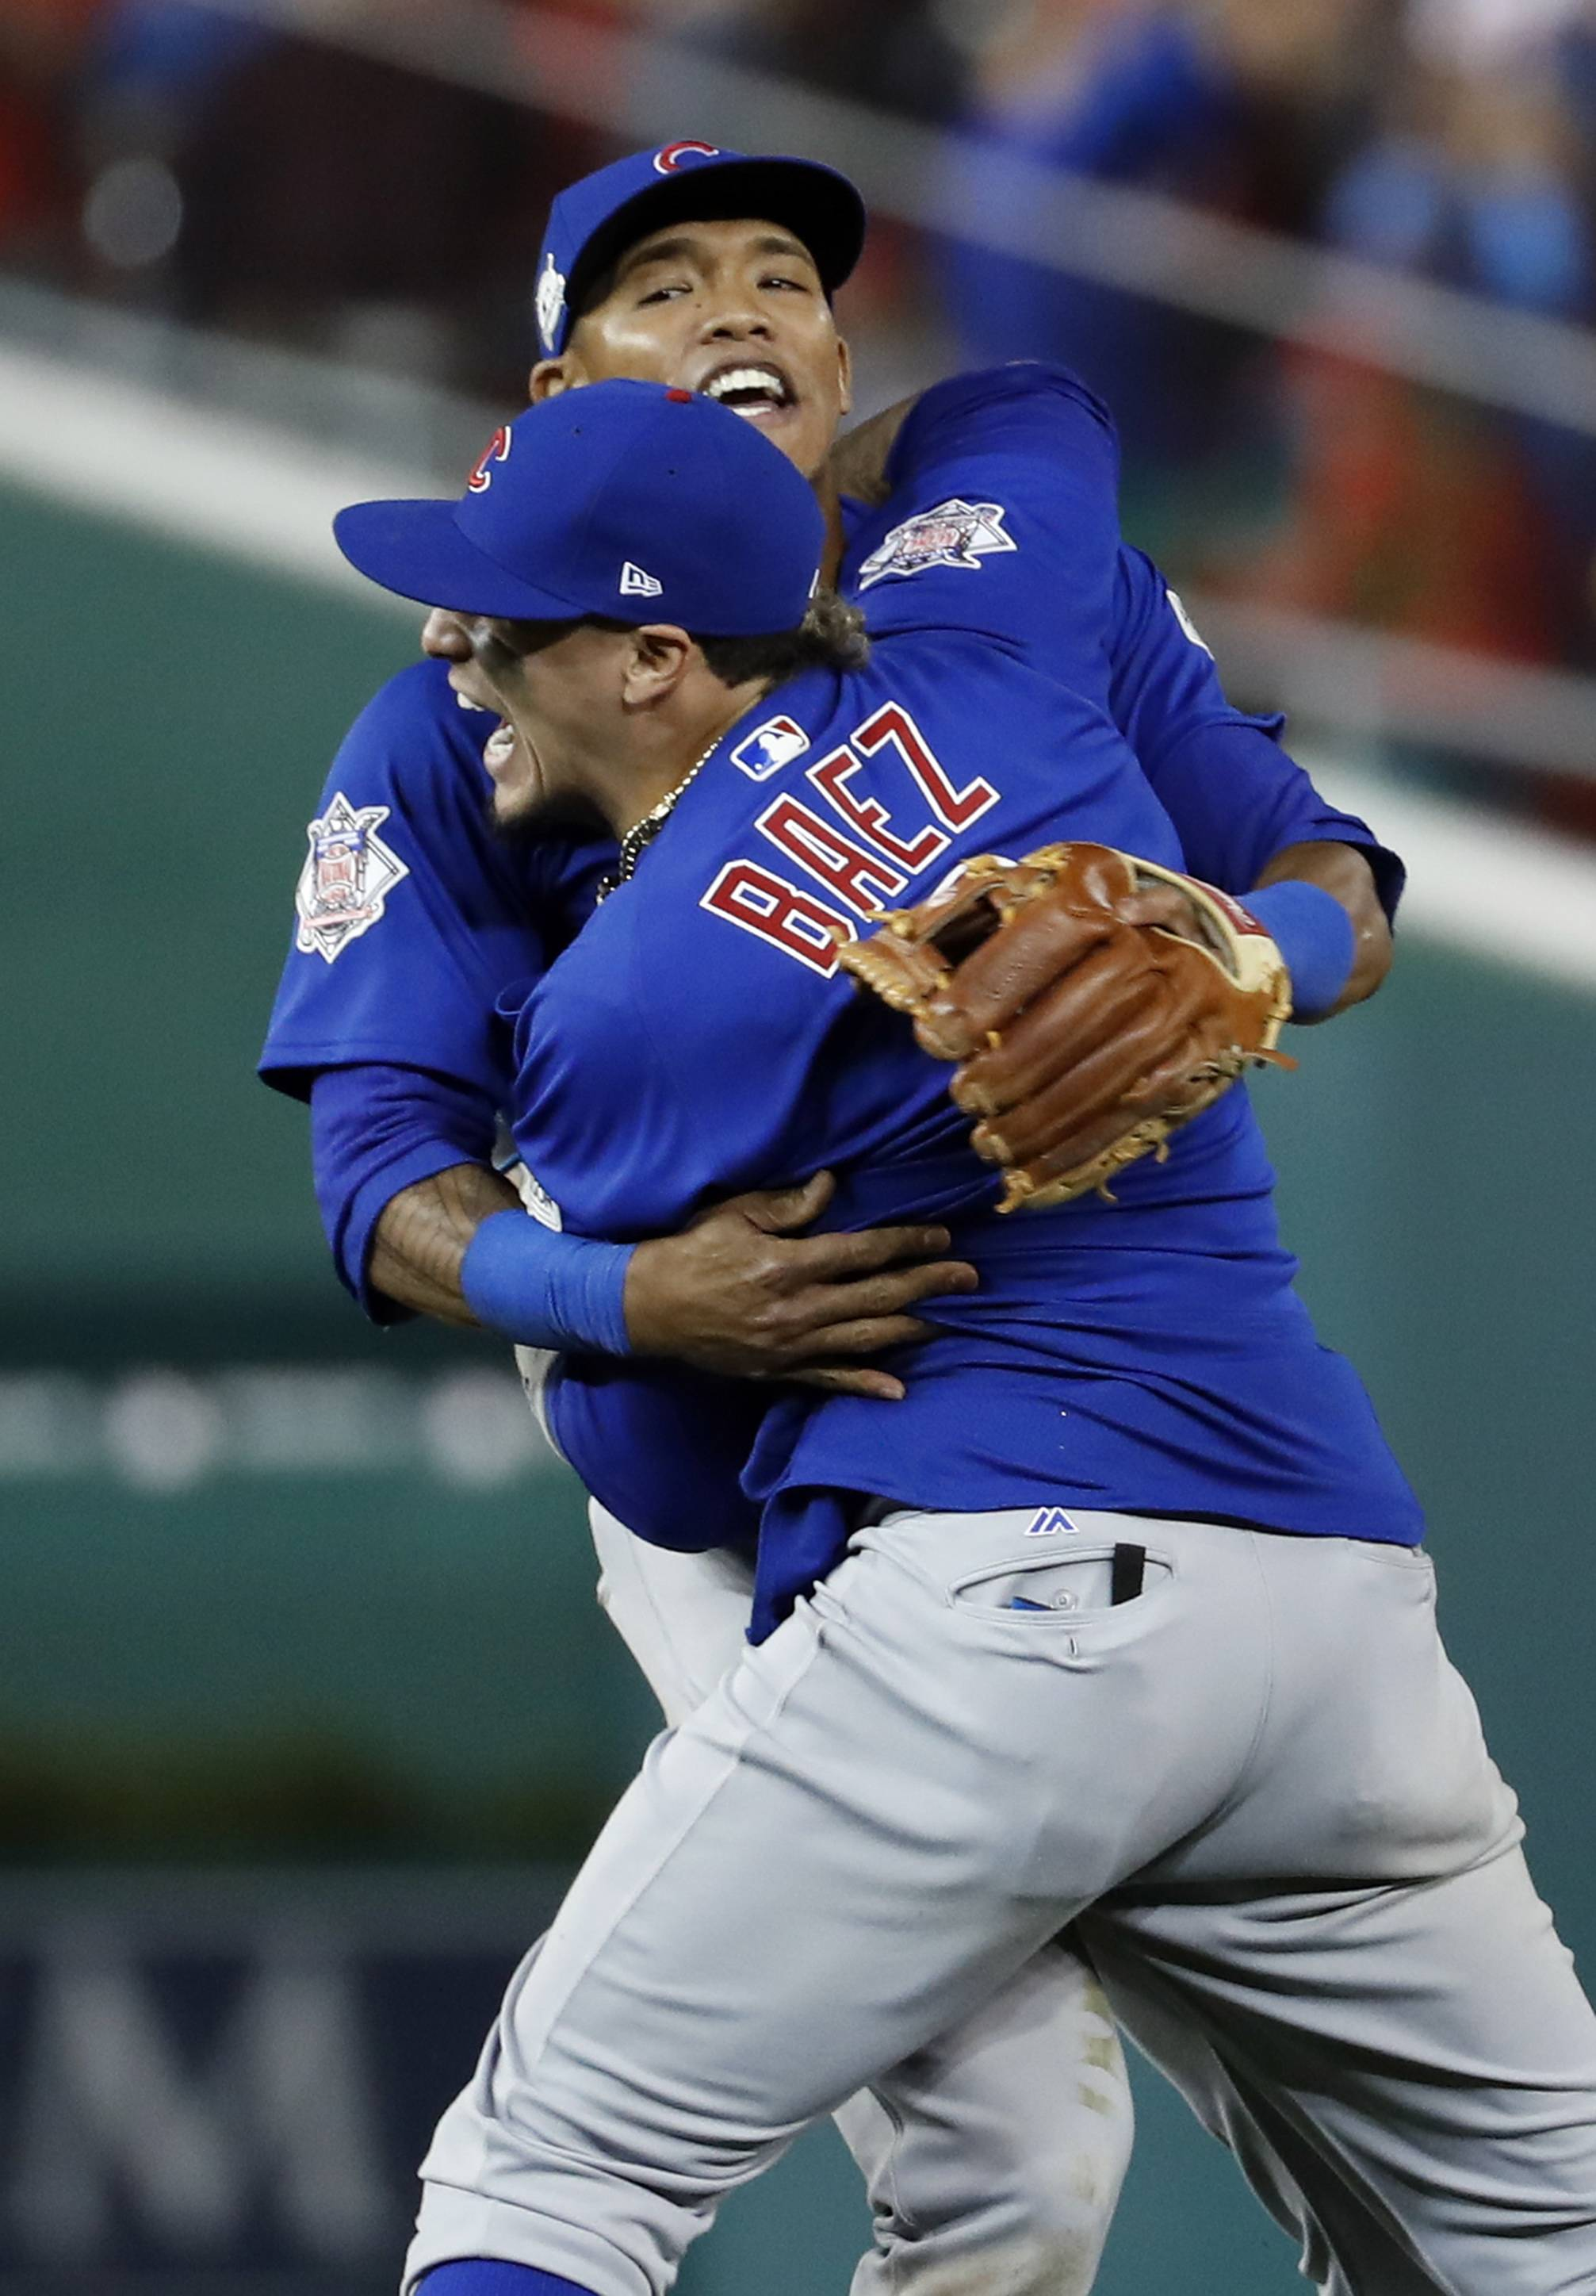 Chicago Cubs' Javier Baez (9) celebrates with teammate Addison Russell after beating the Washington Nationals 9-8 to to win baseball's National League Division Series, at Nationals Park, early Friday, Oct. 13, 2017, in Washington.